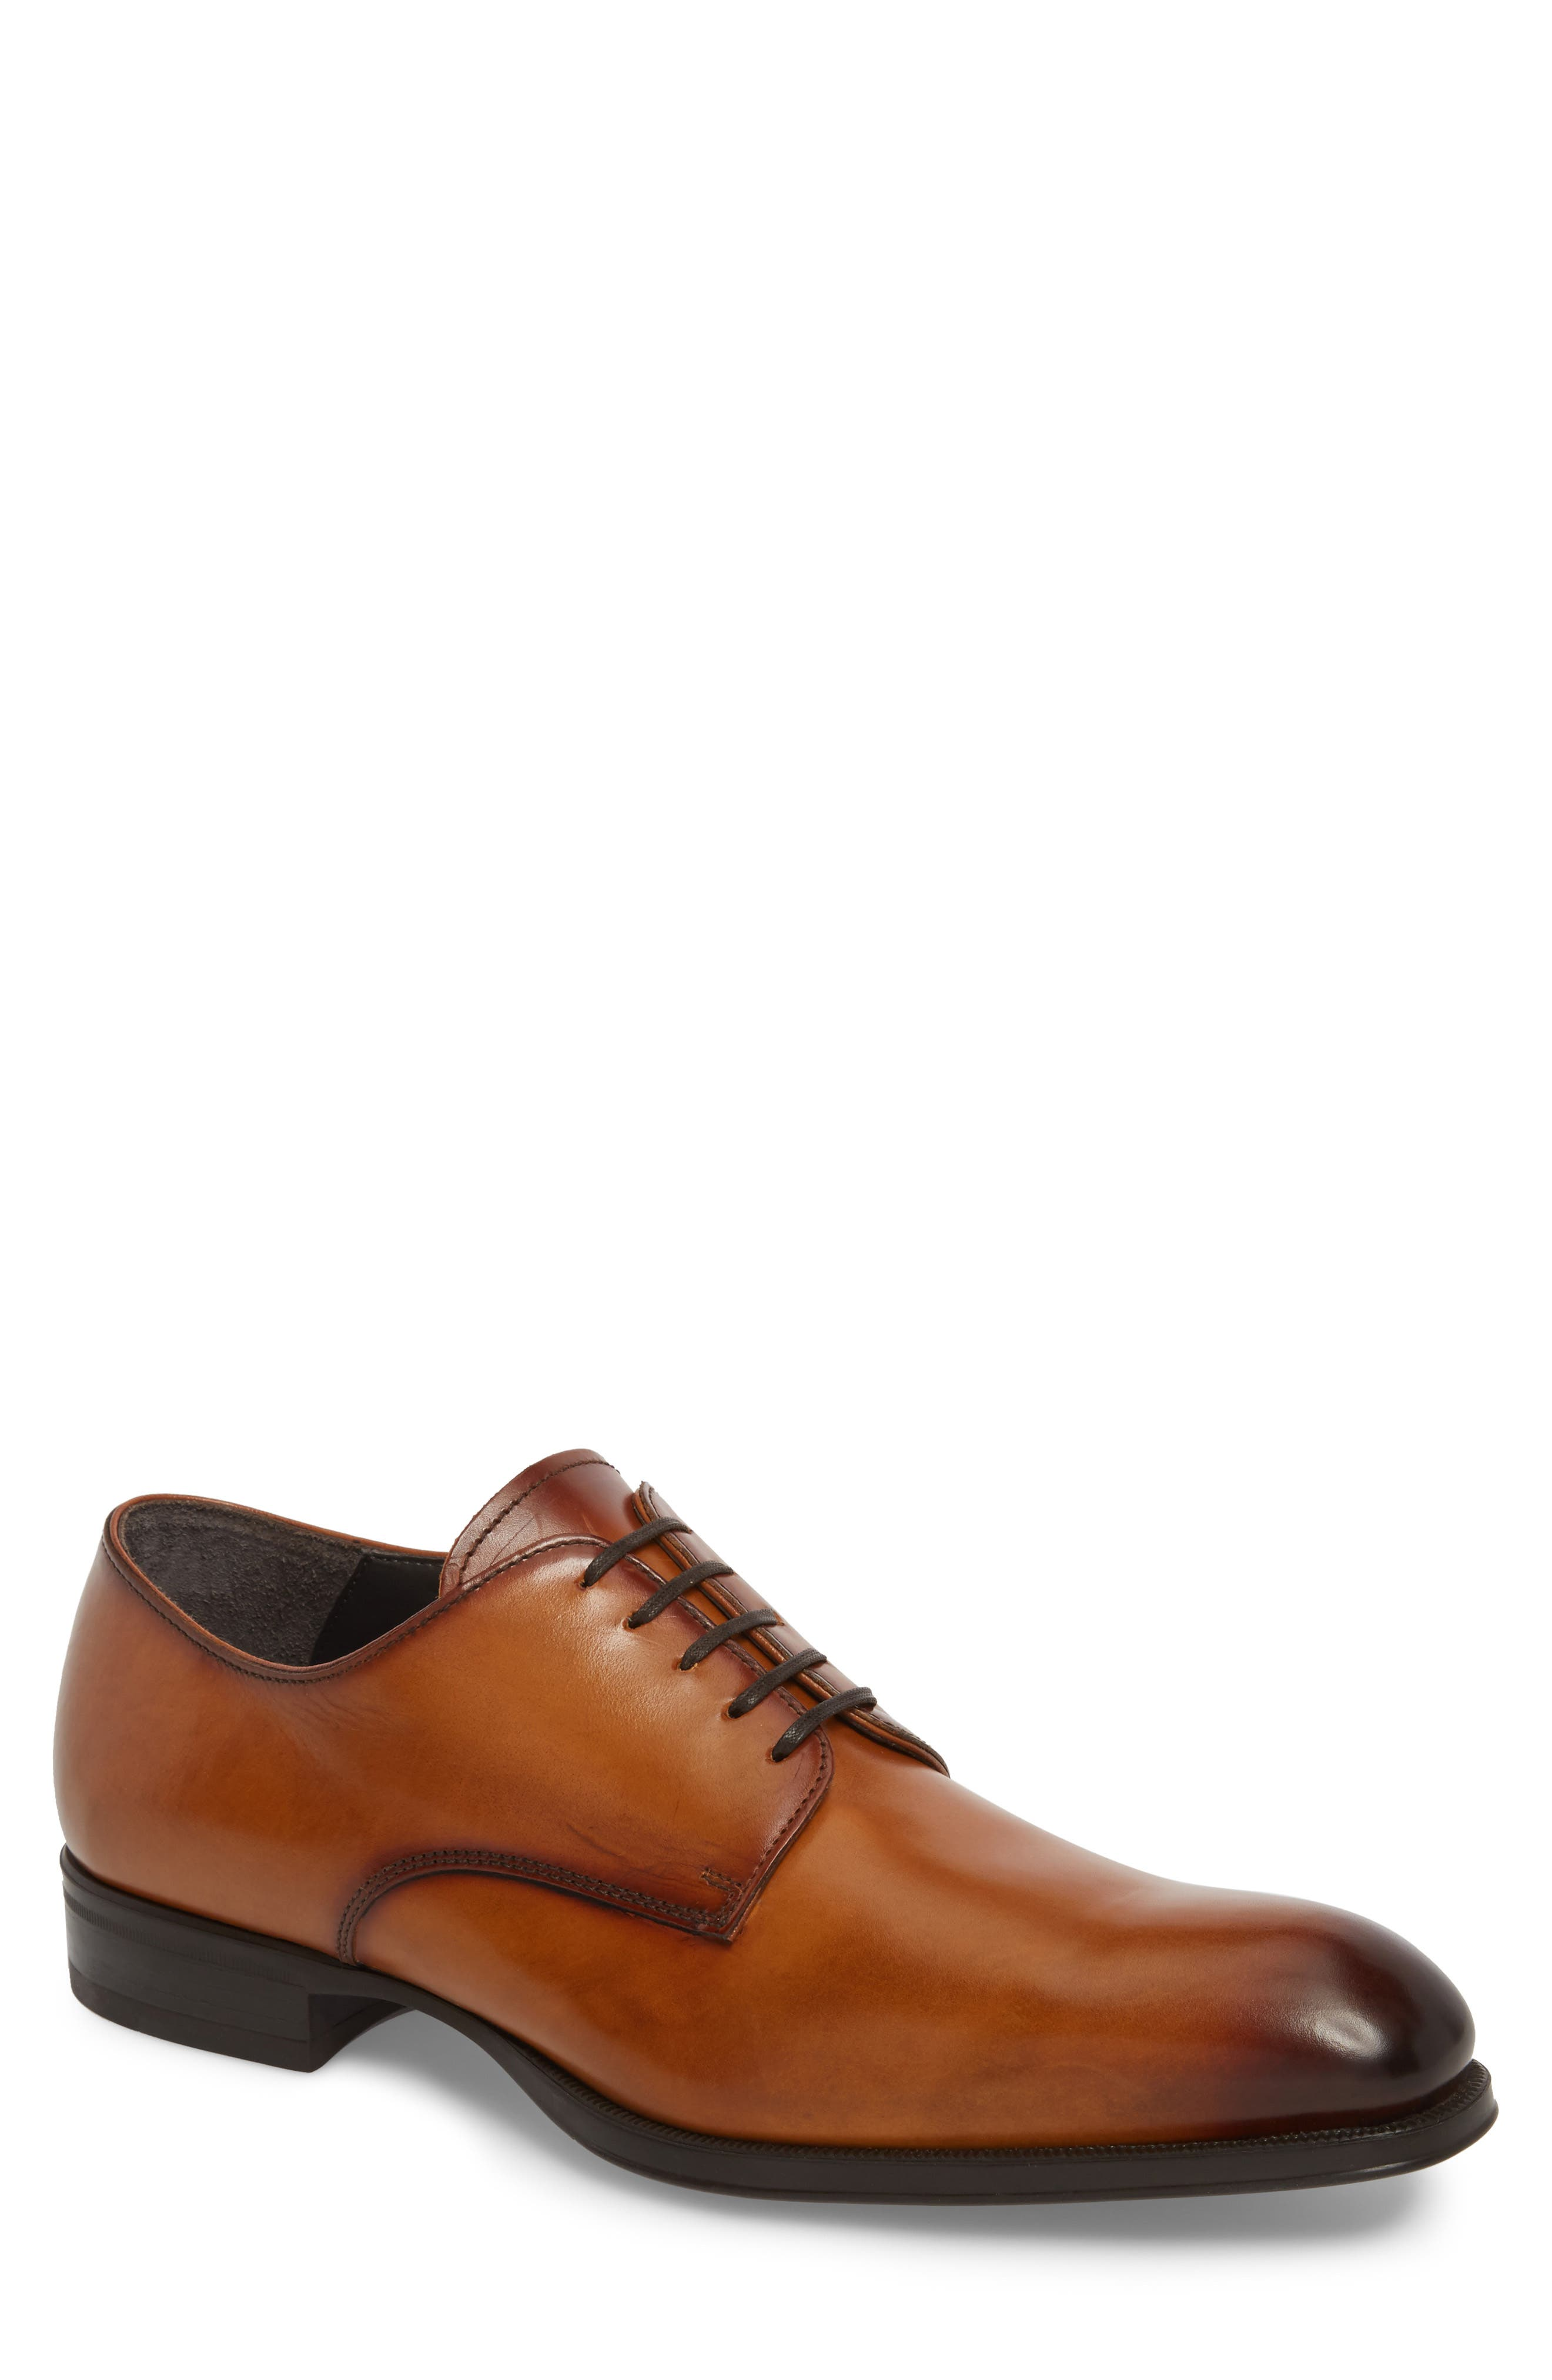 'Buchanan' Plain Toe Derby,                         Main,                         color, Cuoio